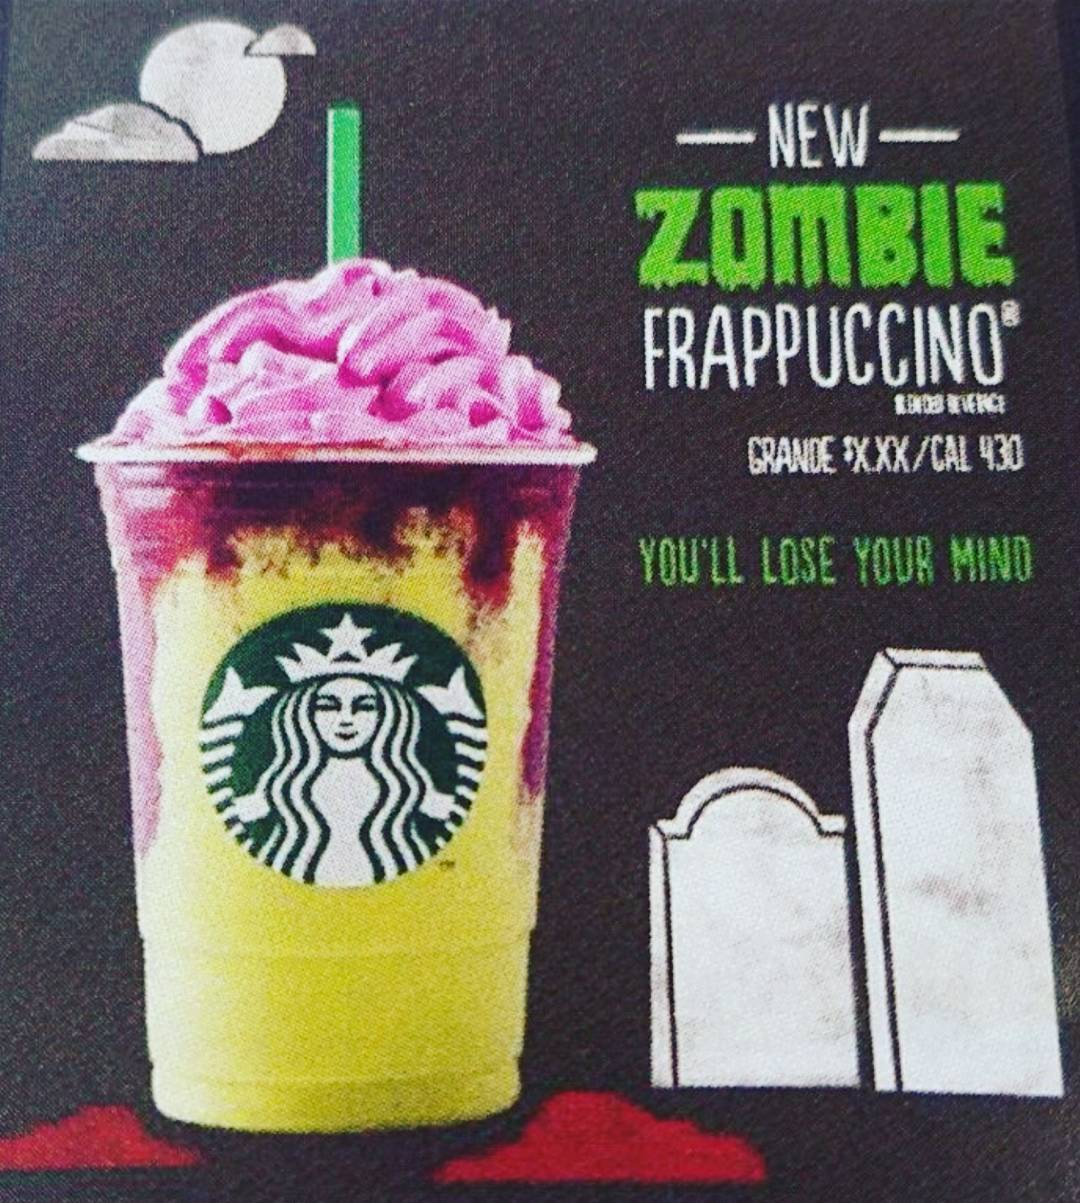 A colorful Frappuccino with a yellow base and red drizzle is topped with pink whipped creme and sit's next to the announcement stating it's the